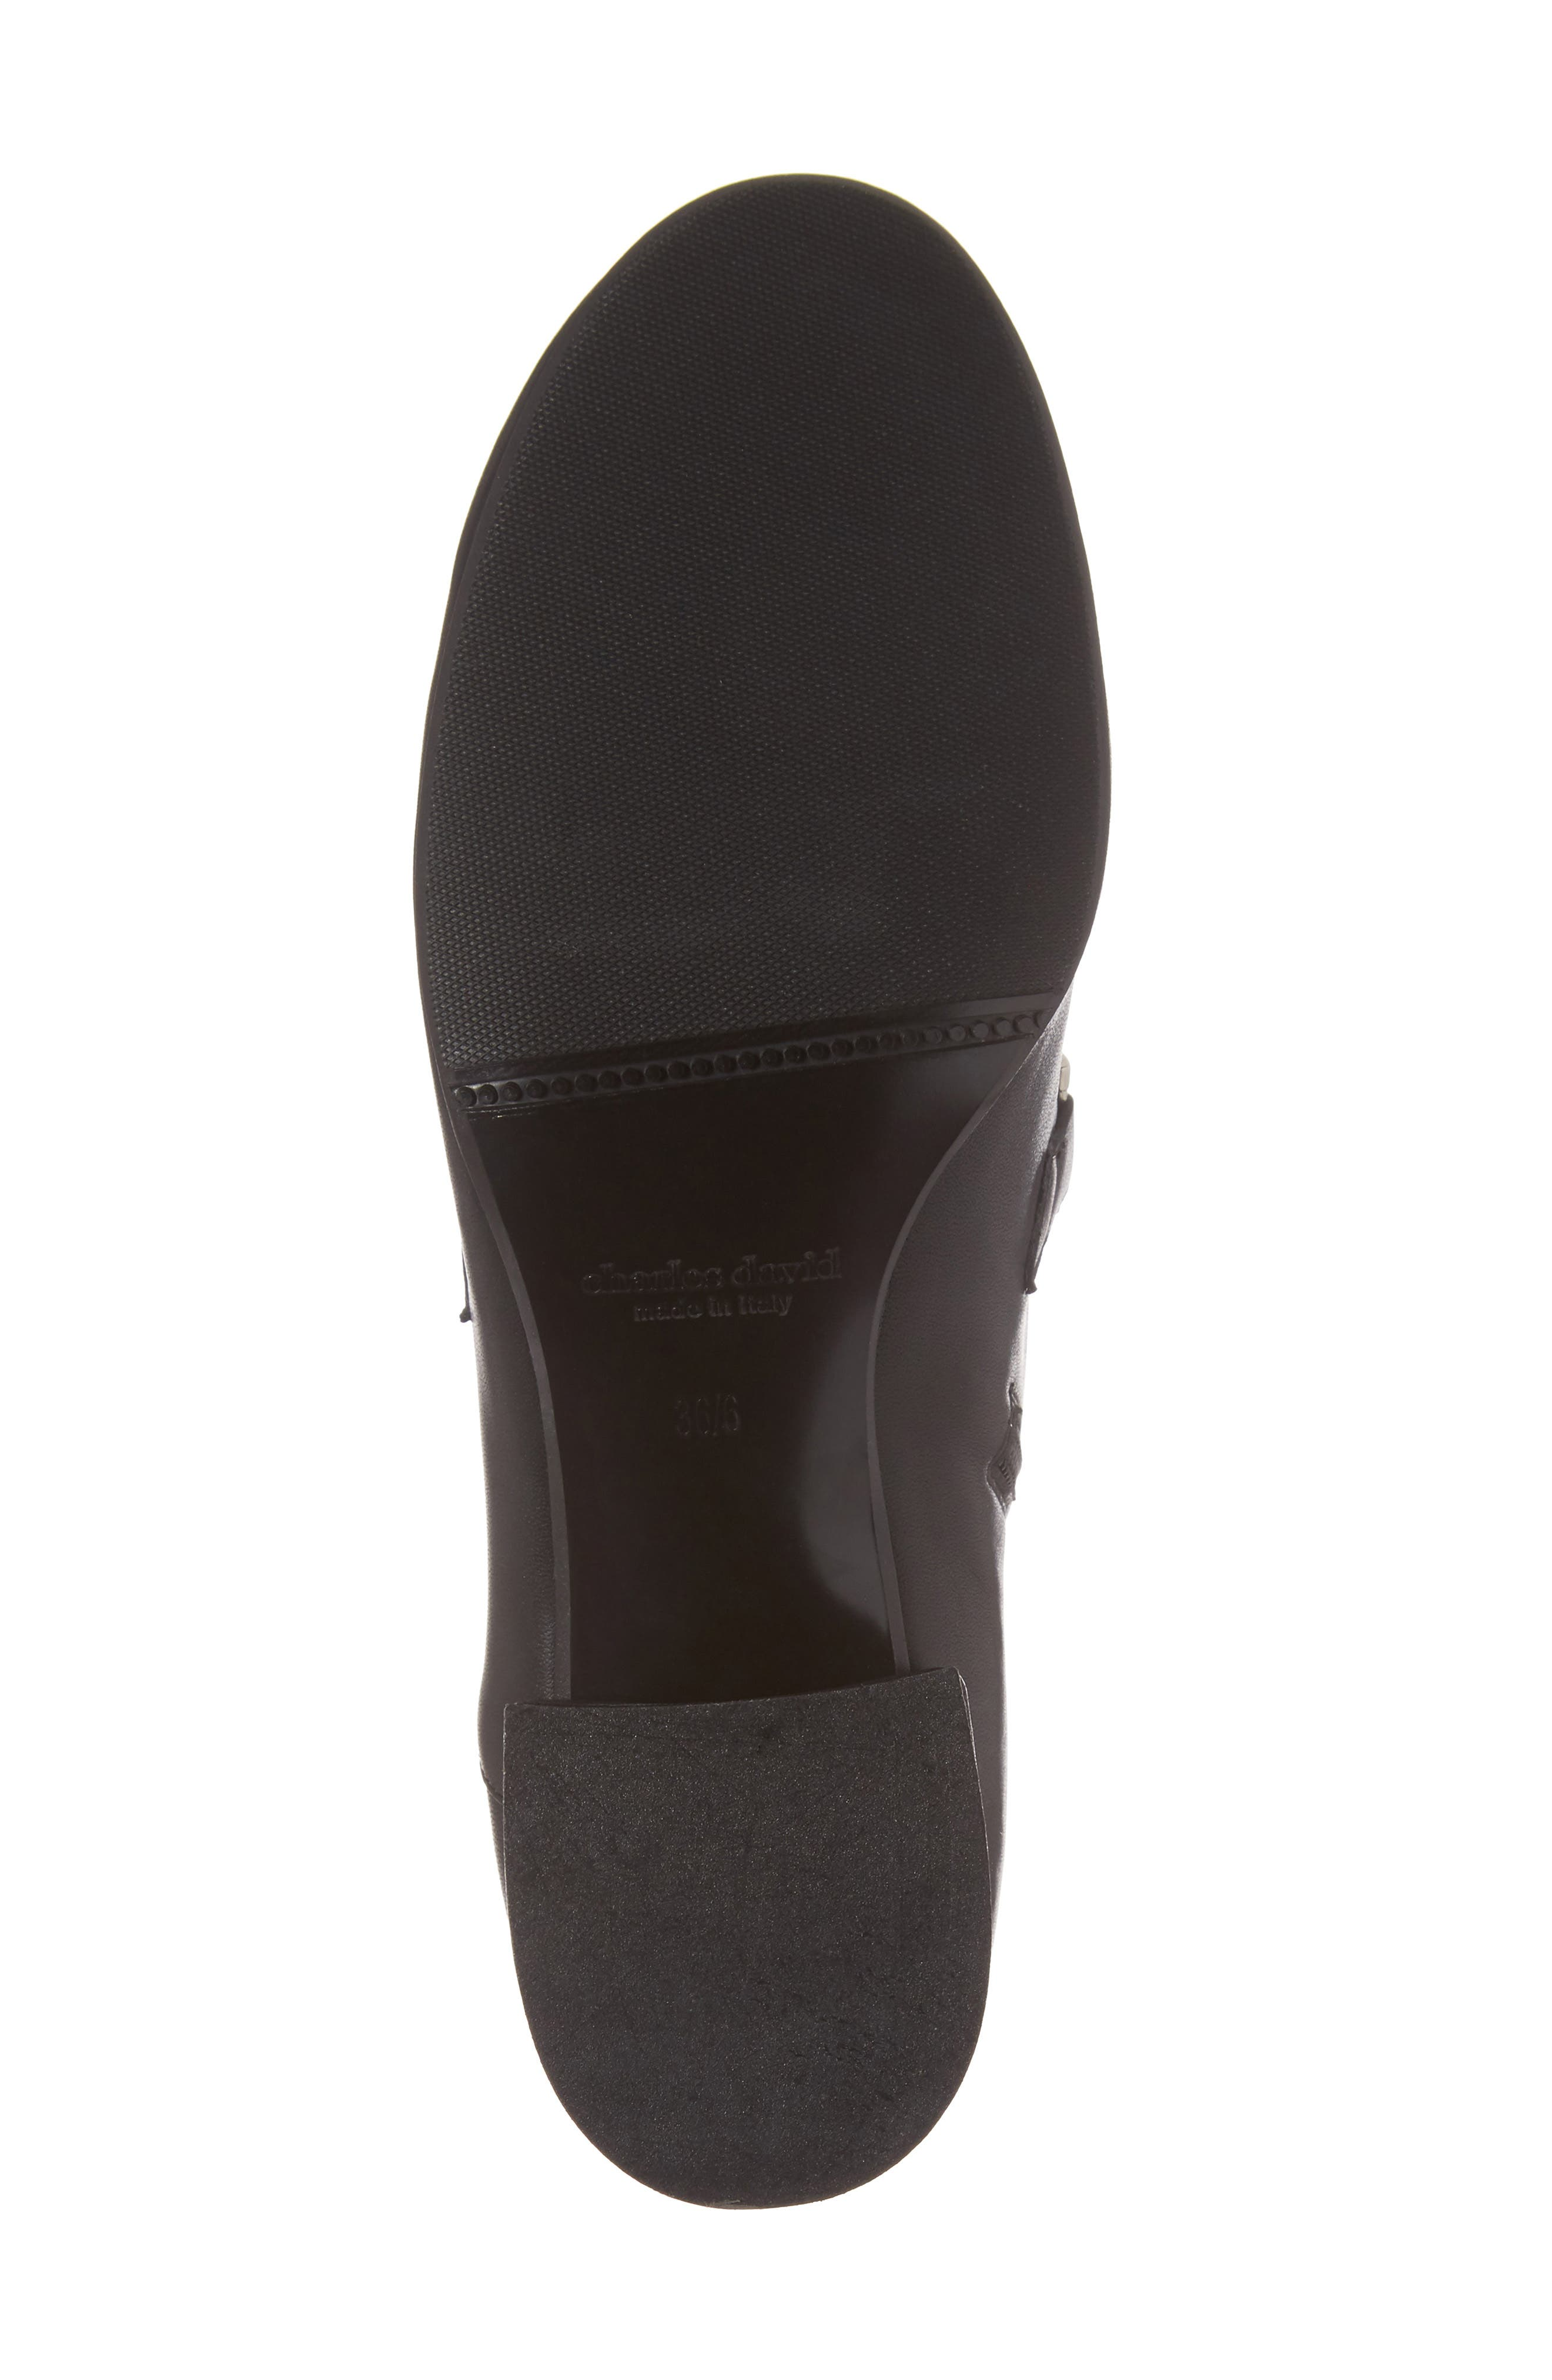 Mod Loafer Bootie,                             Alternate thumbnail 6, color,                             001